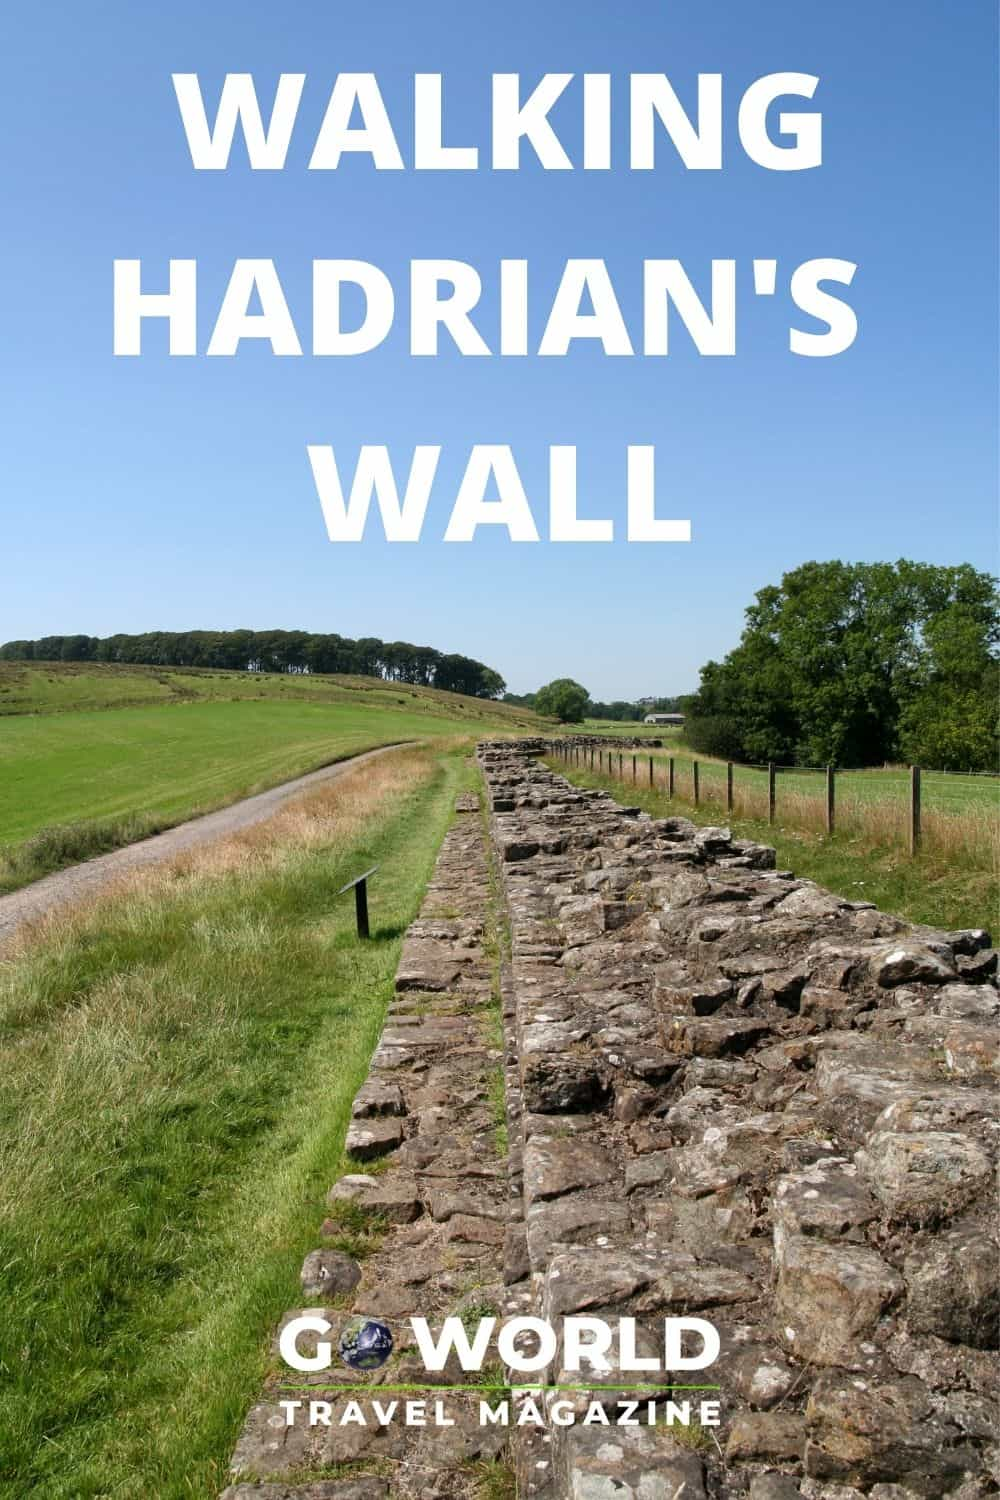 Walking Hadrian's Wall Trail is a scenic and historic journey. But, did you know you can walk it without flying to England? Here's how. #HadriansWall #WalkingHadriansWall #WalksinEngland #UKWalks